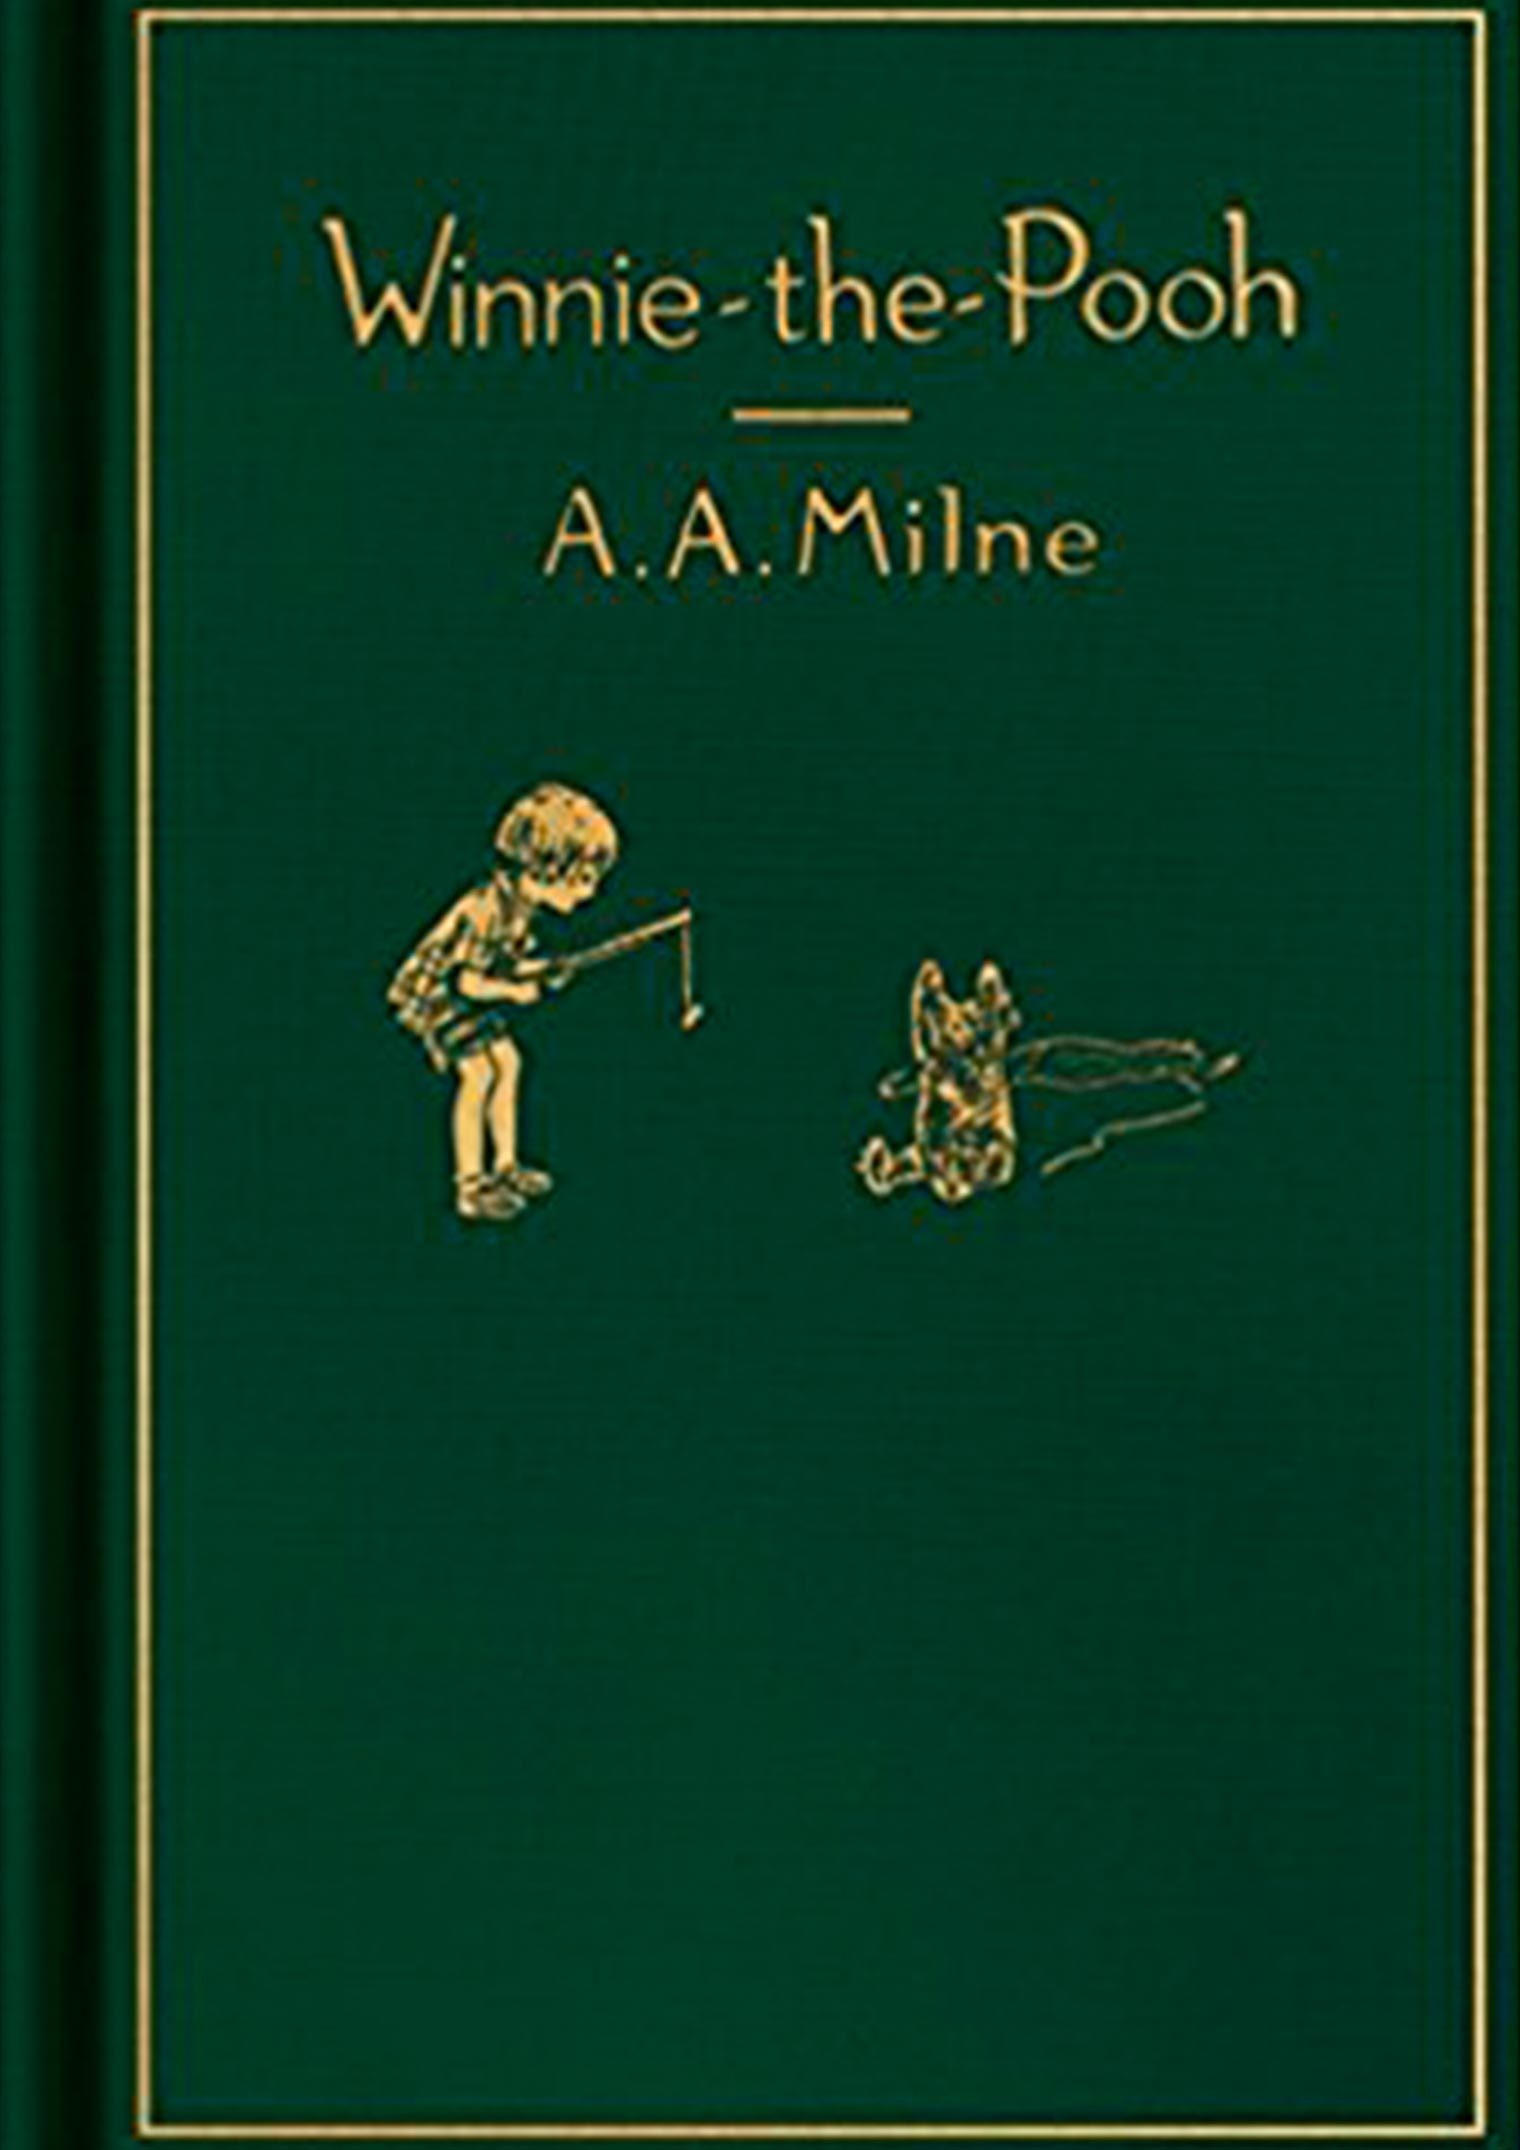 Winnie the pooh classic story books for children